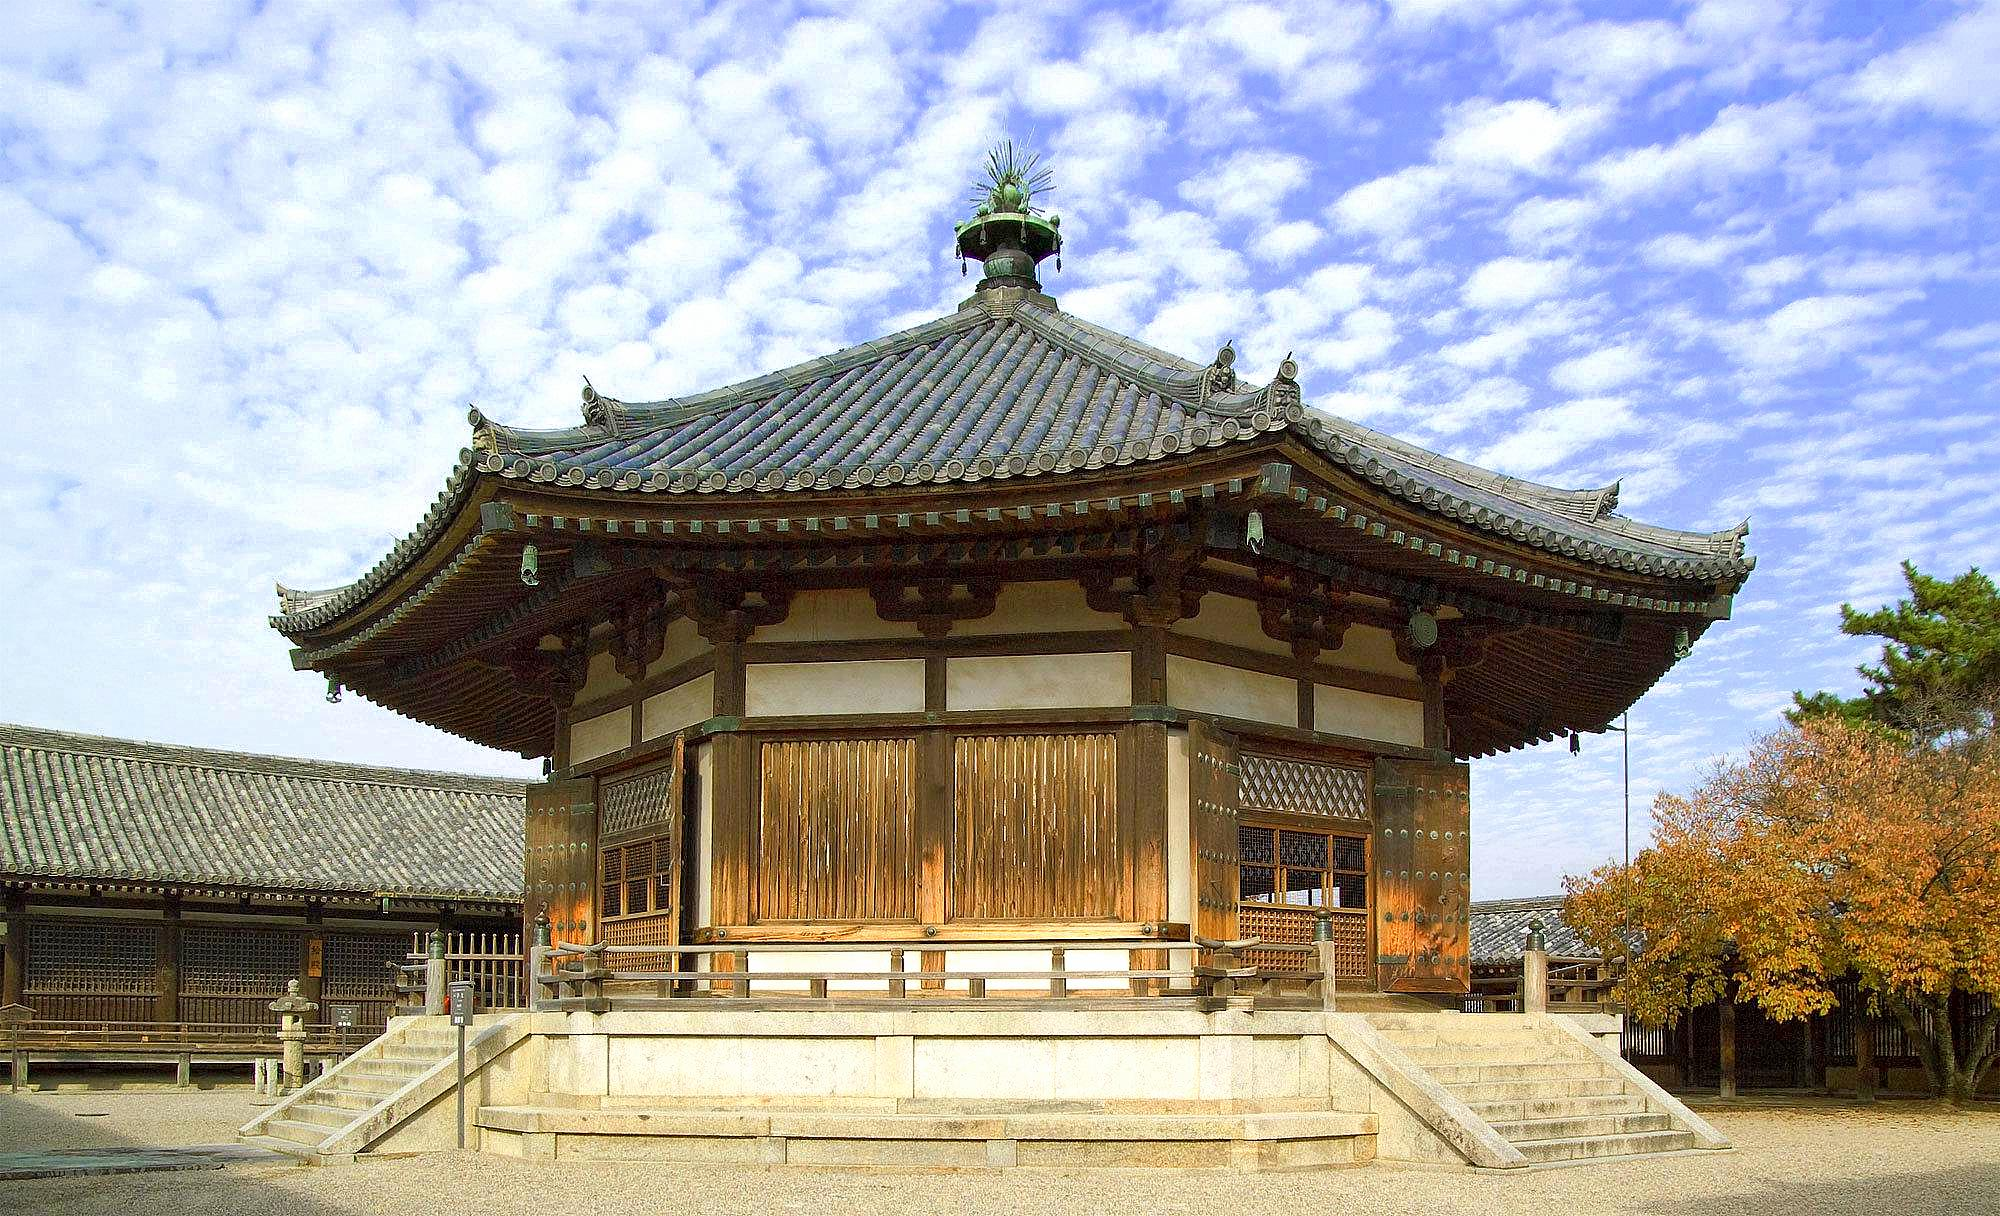 Horyuji Temple Japan  Yumedono (Hall of Dreams) Buddhist Temple UNESCO World Heritage SIte -Nara Prefecture, Japan